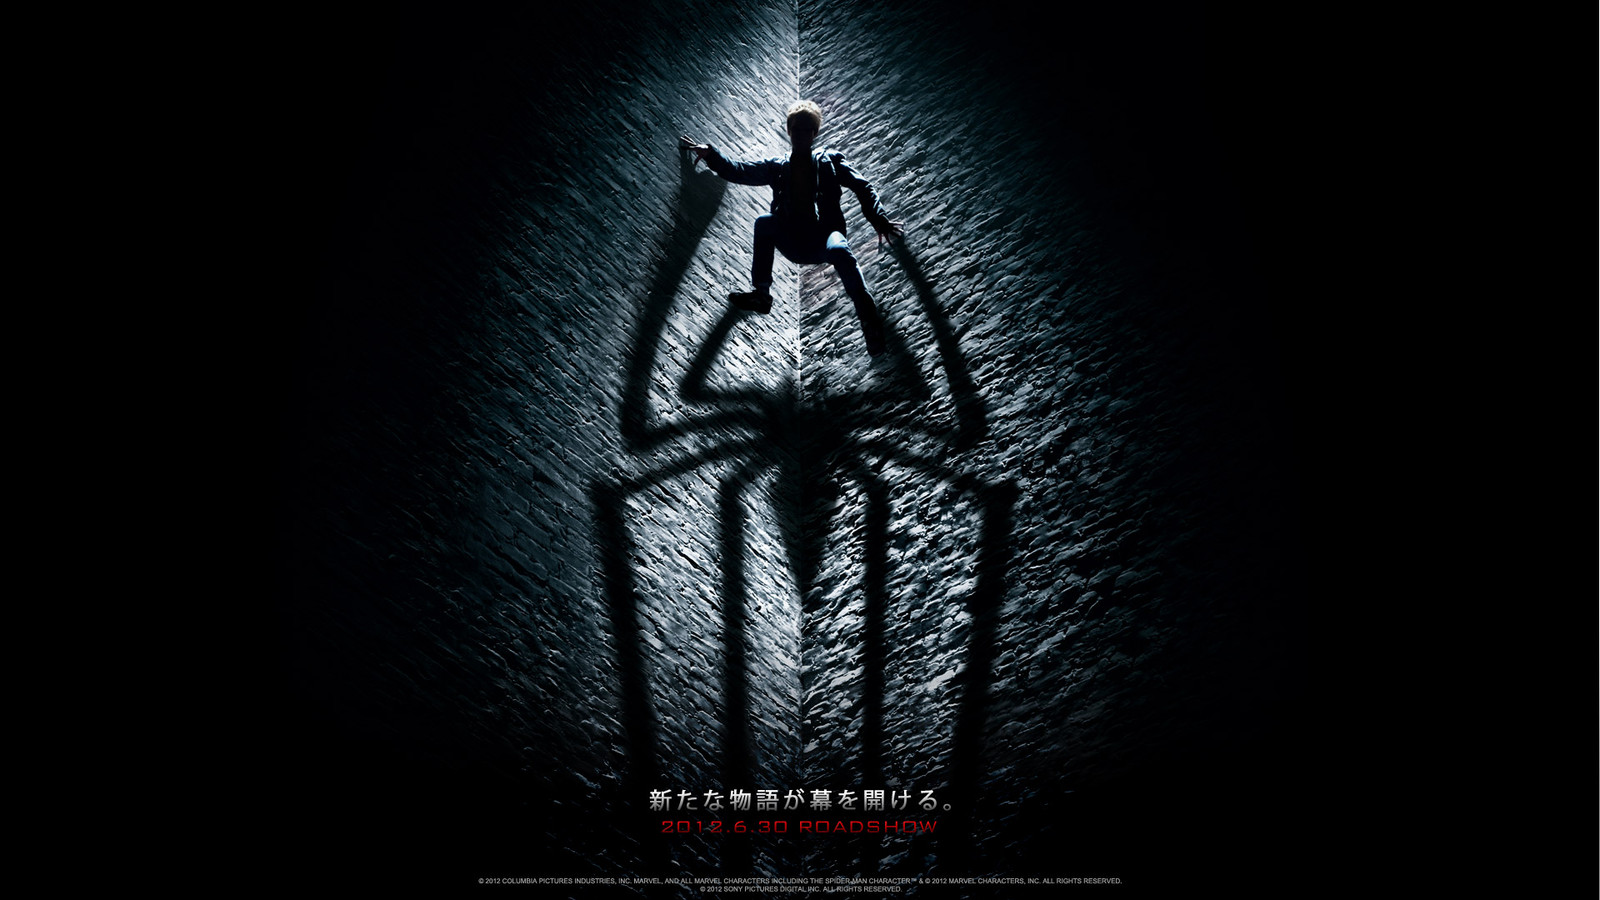 Spiderman_wp_poster_1920